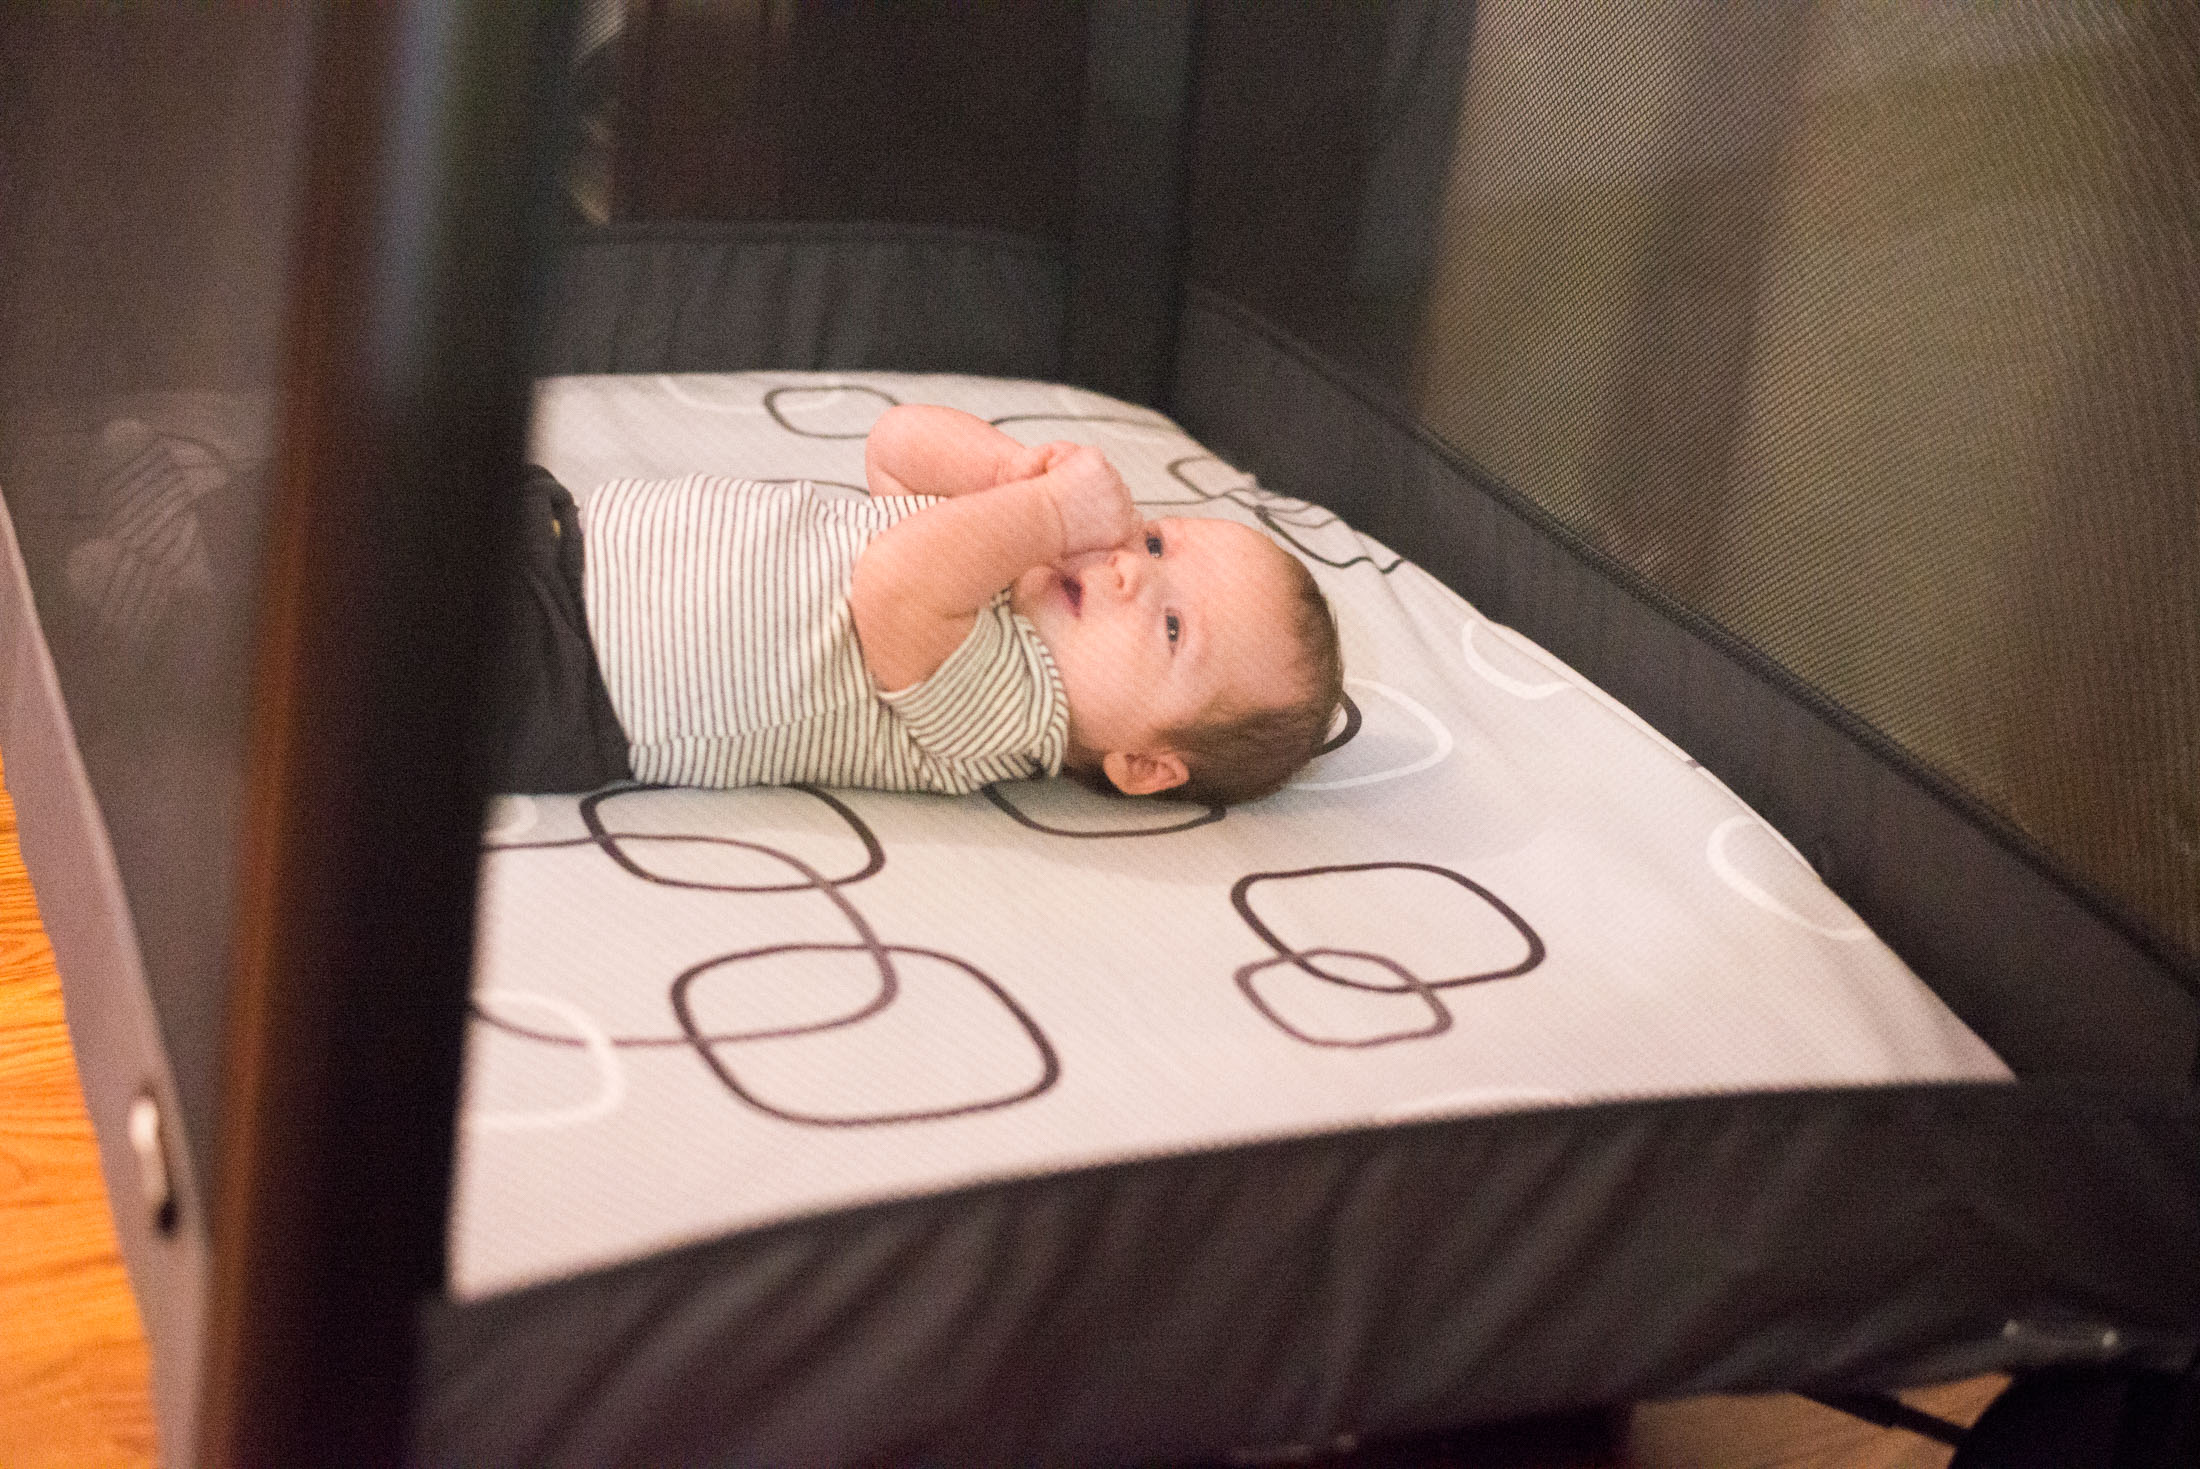 The 4moms Breeze Plus Playard is an insanely cool godsend for new moms. It's a bassinet, changing table and playard all in one. See it in action here.